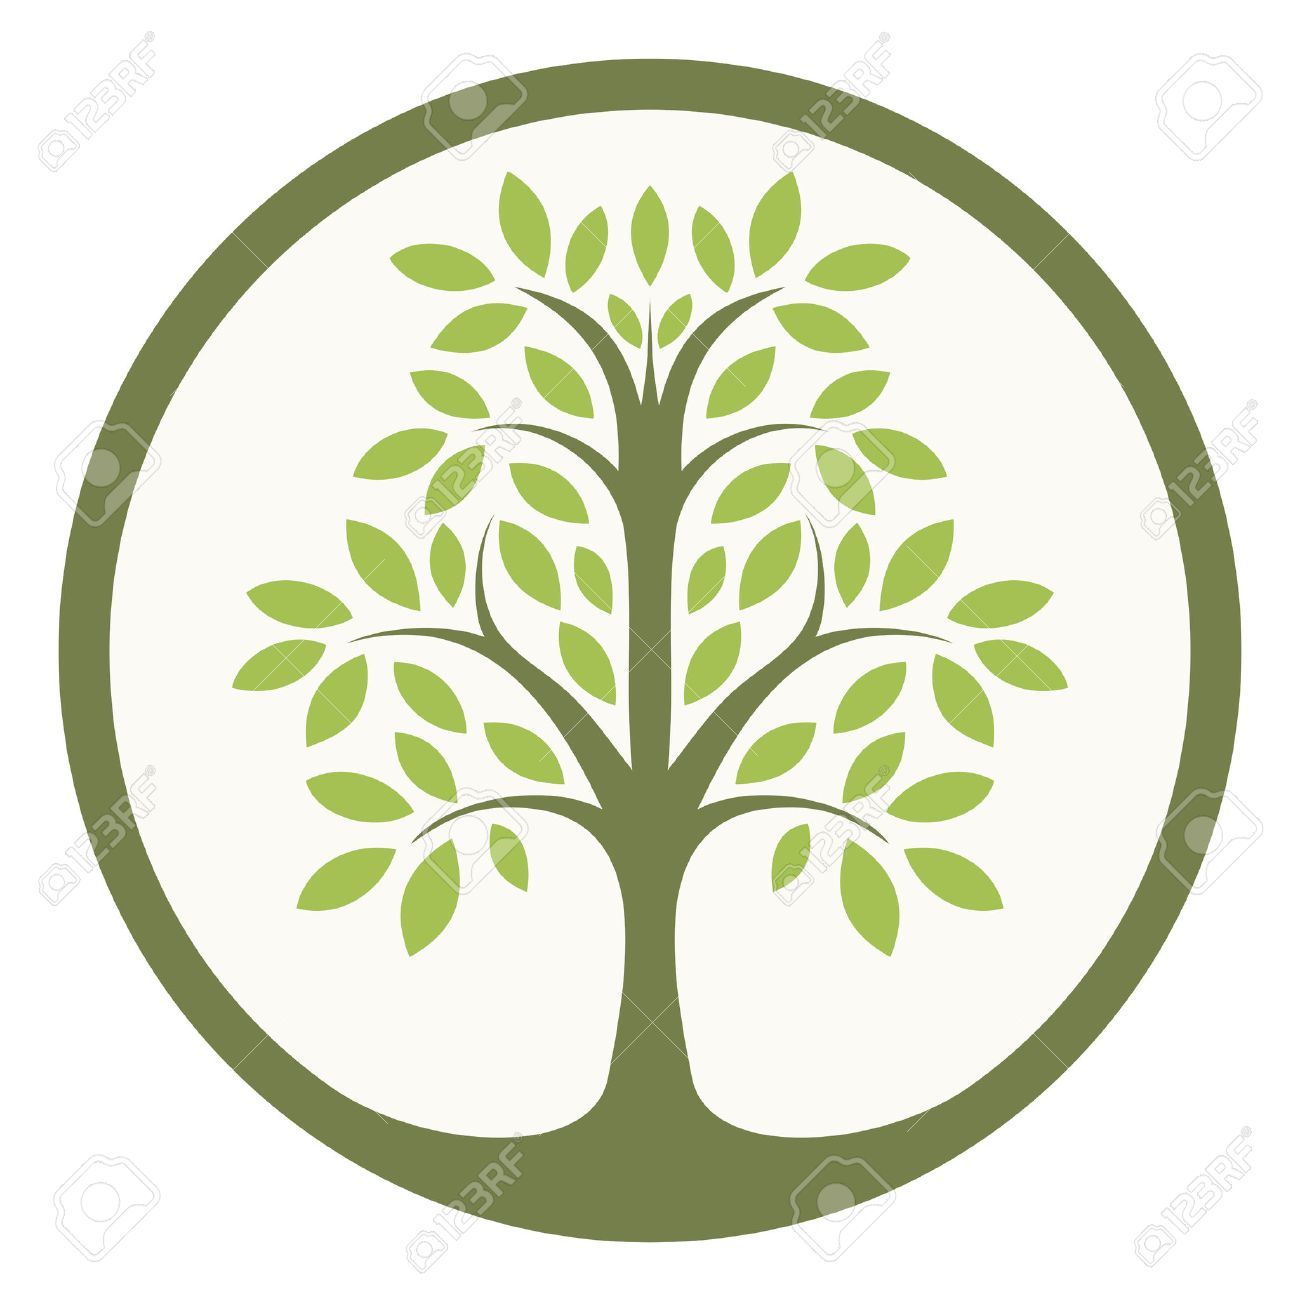 green tree of life in a circle royalty free cliparts vectors and